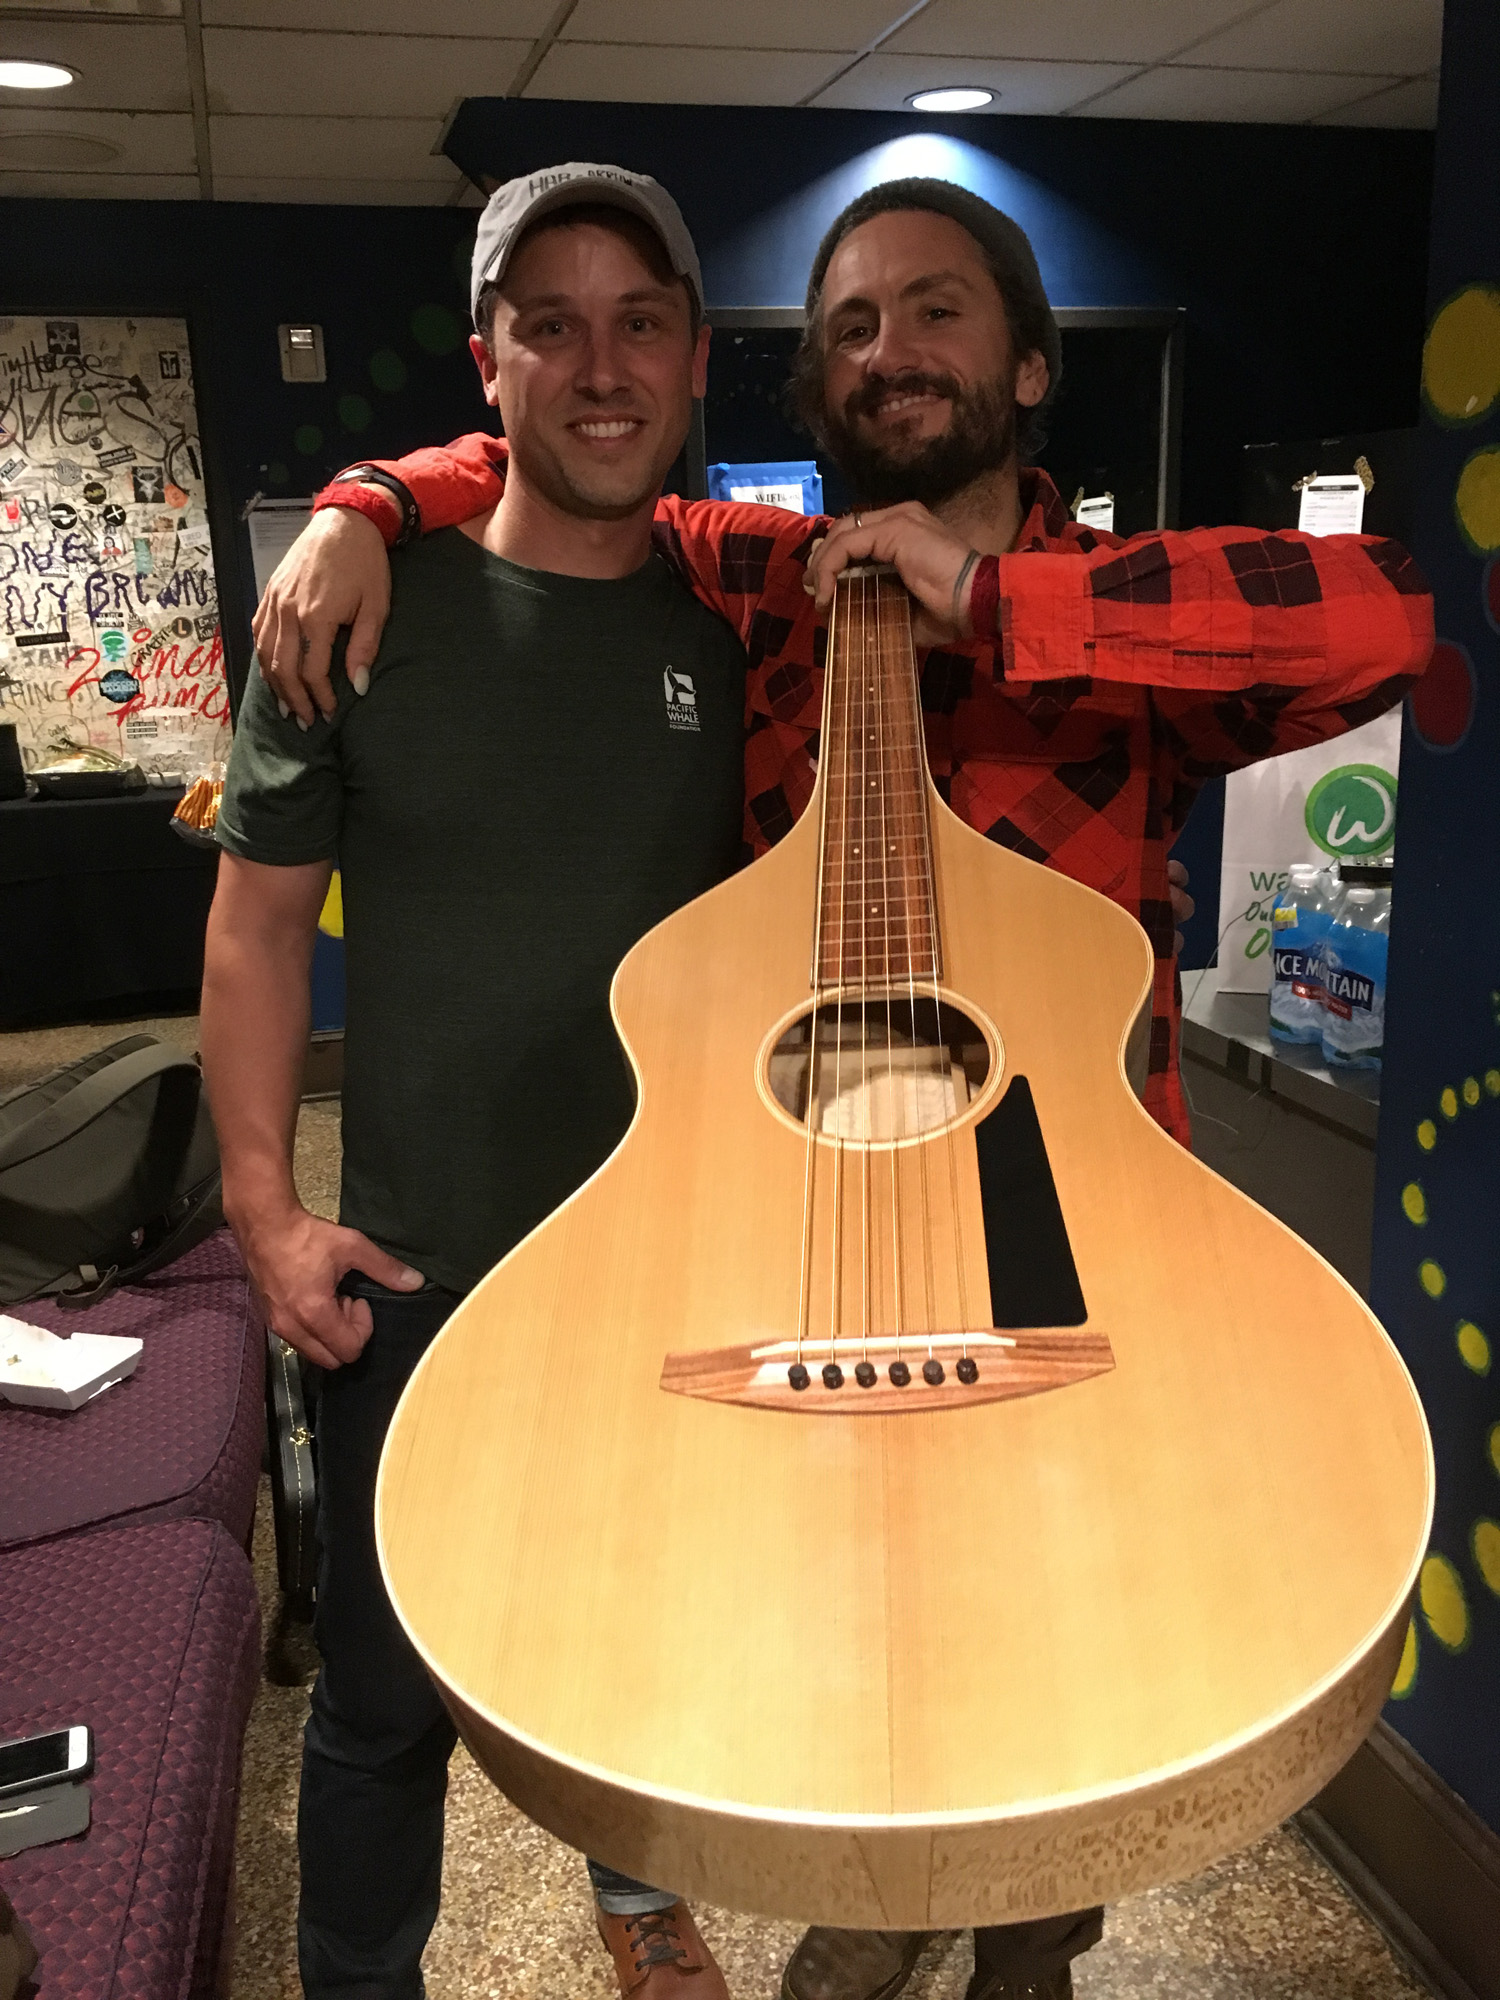 John Butler loving every minute of life. What a great show  John Butler Trio , Mamma Kin and  Spender  put on at the House of Blues in Cleveland. It was an honor to send the stick home with John, may it sing forever. Check out  Mama Kin Spender  you can't miss this duo!!!